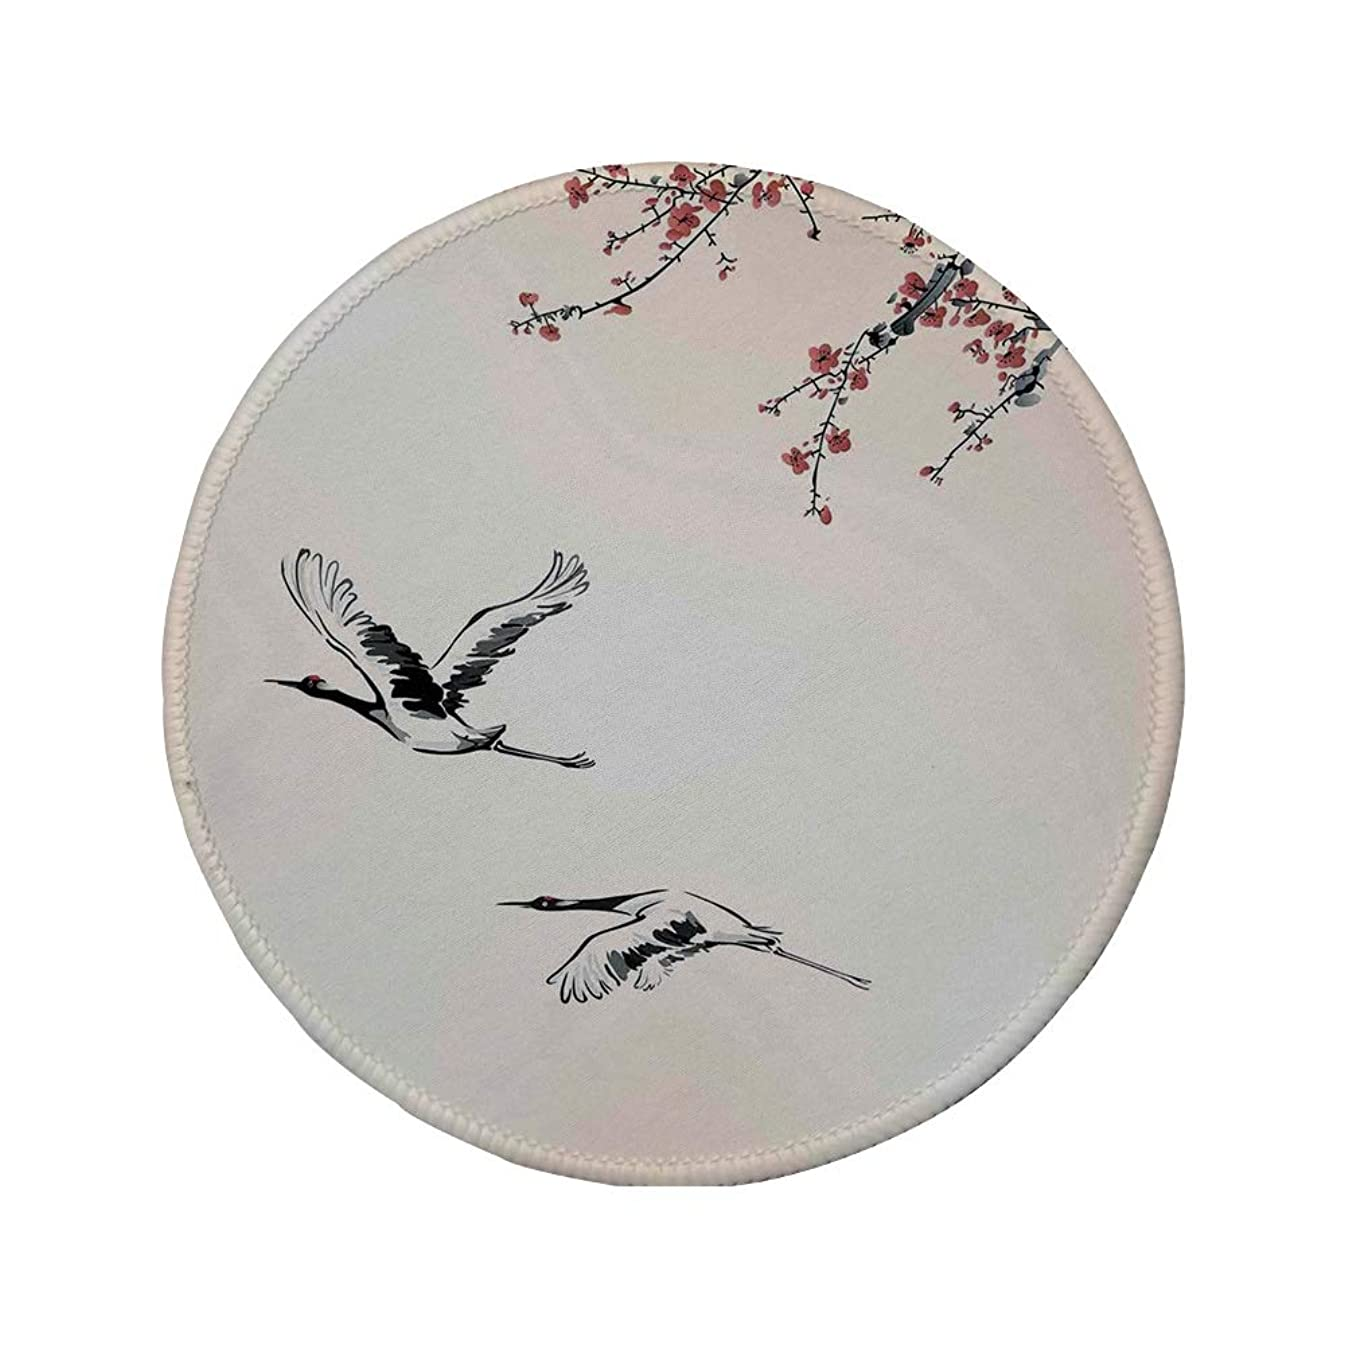 Non-Slip Rubber Round Mouse Pad,Flying Birds Decor,Branches of Japanese Cherry Tree with Flying Swallows in The Air Spring Colors,Red Grey Ecru,11.8